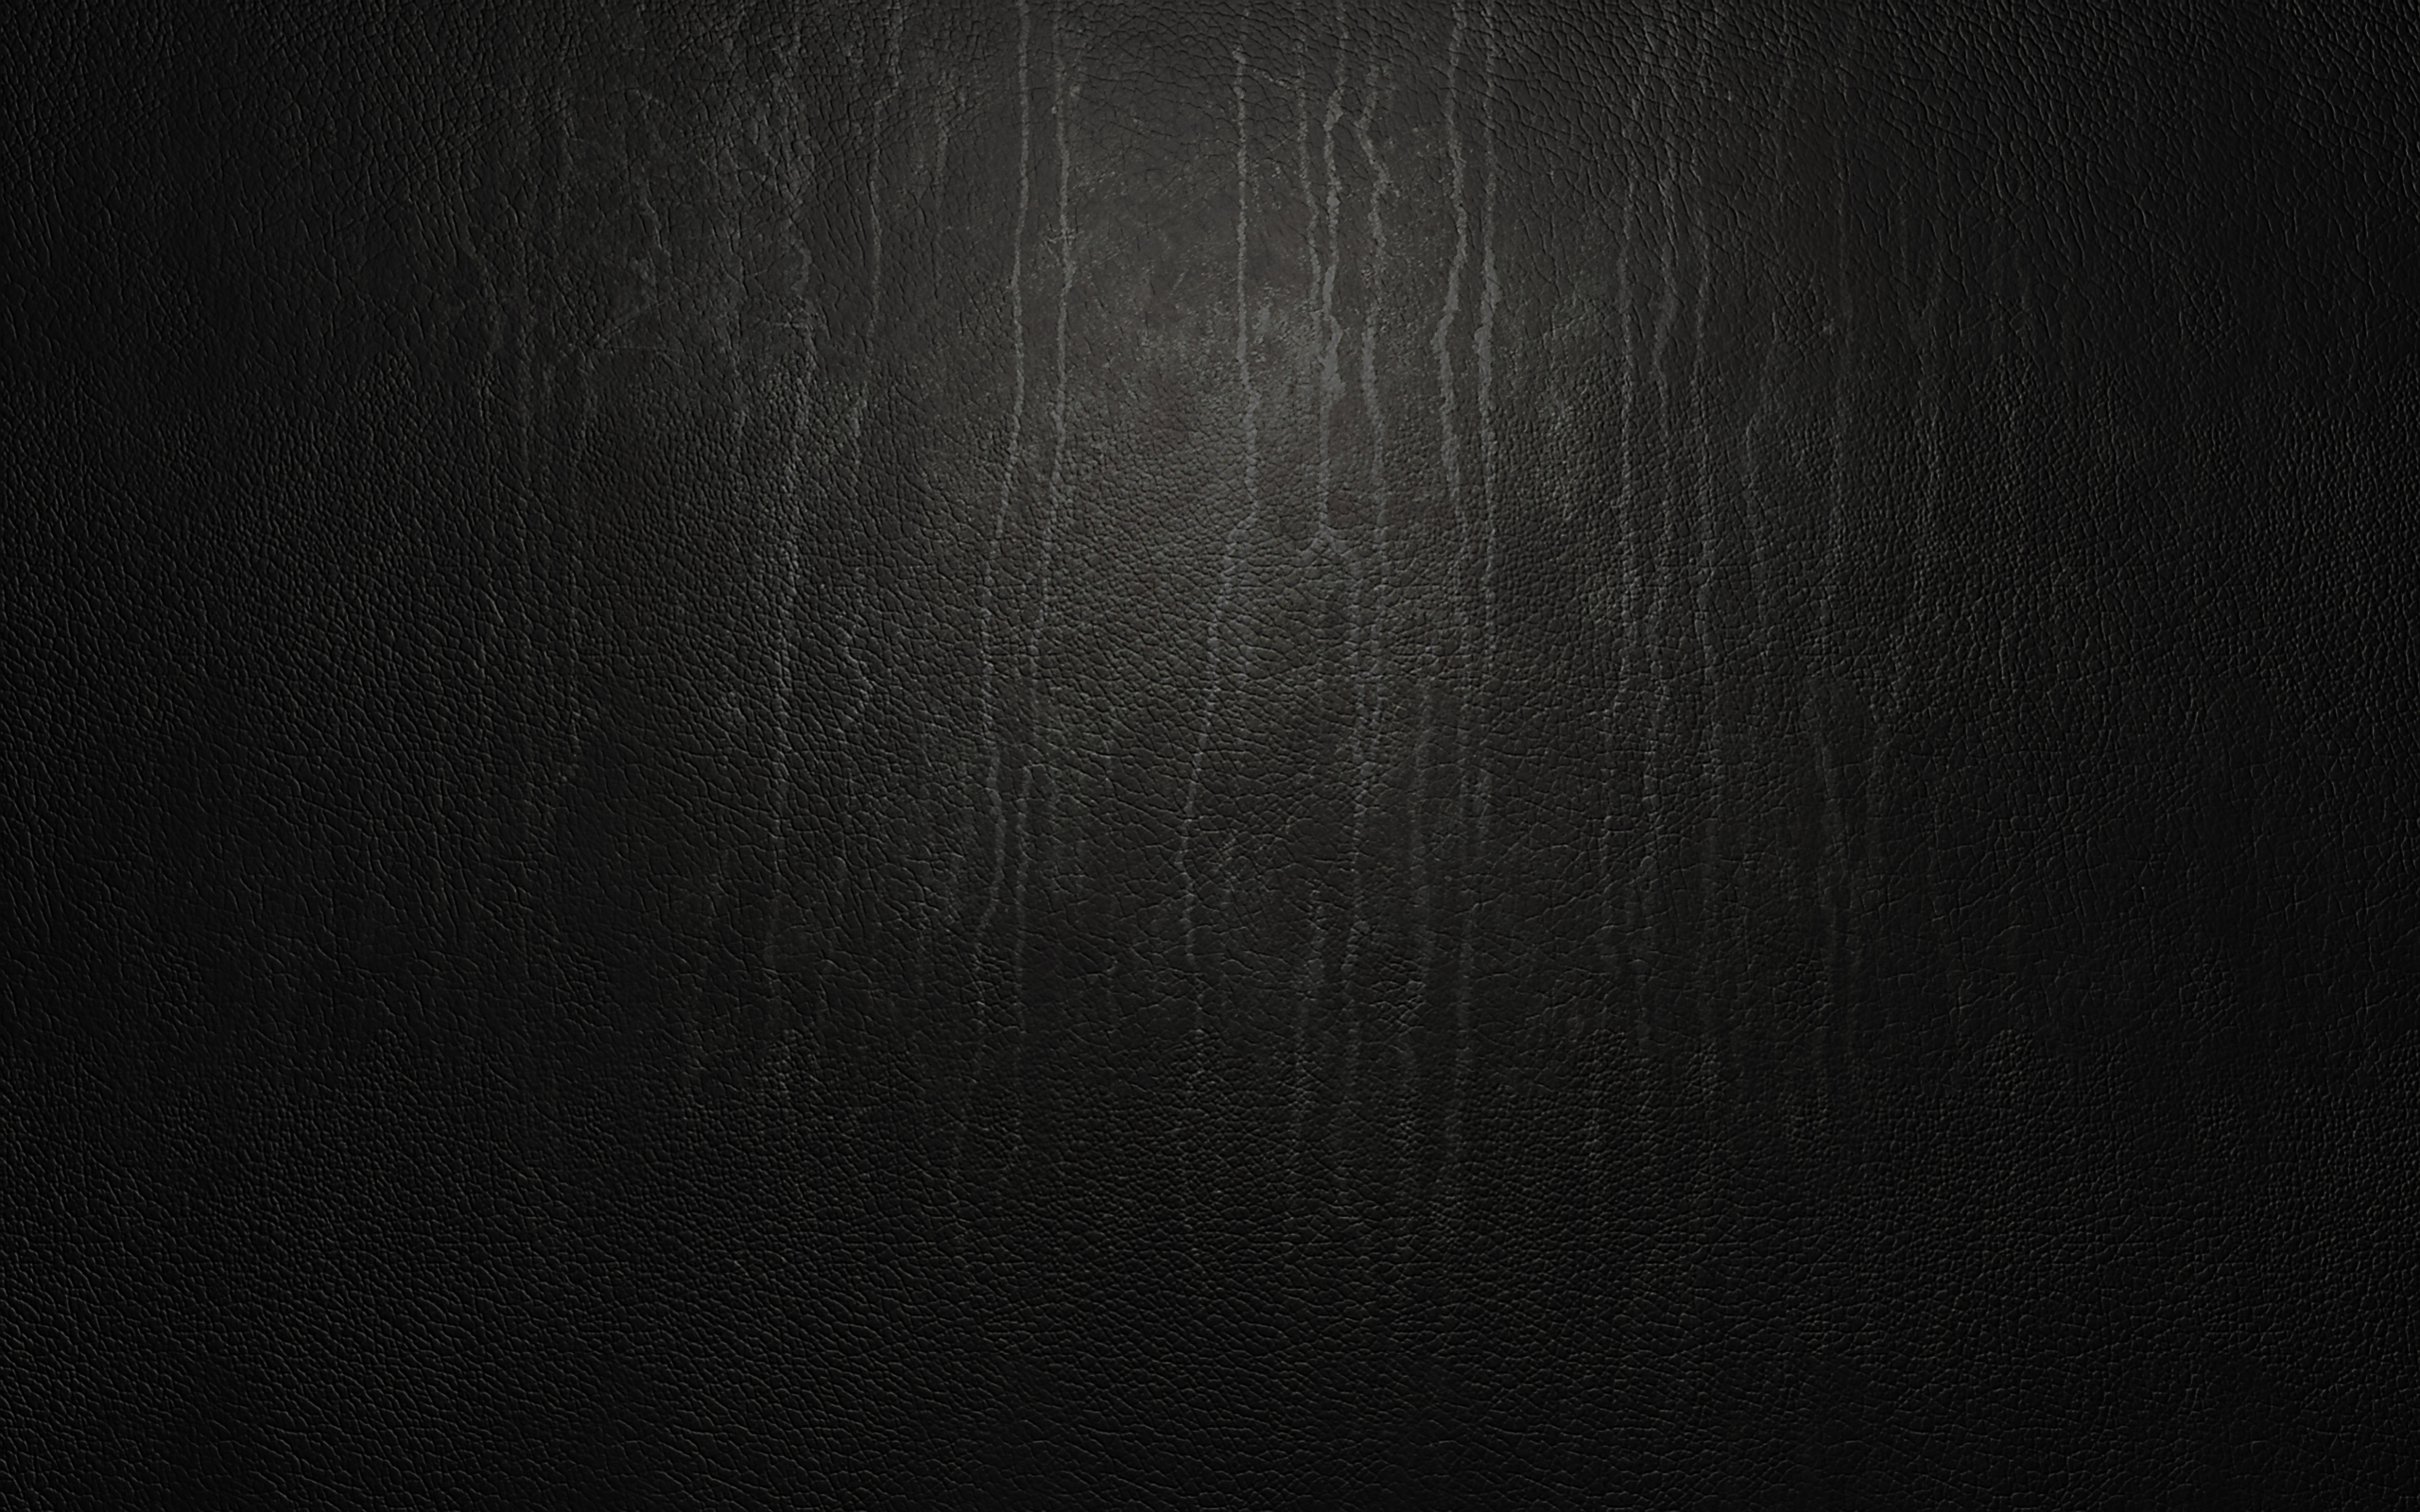 leather black dark textures Free Wallpaper WallpaperJam